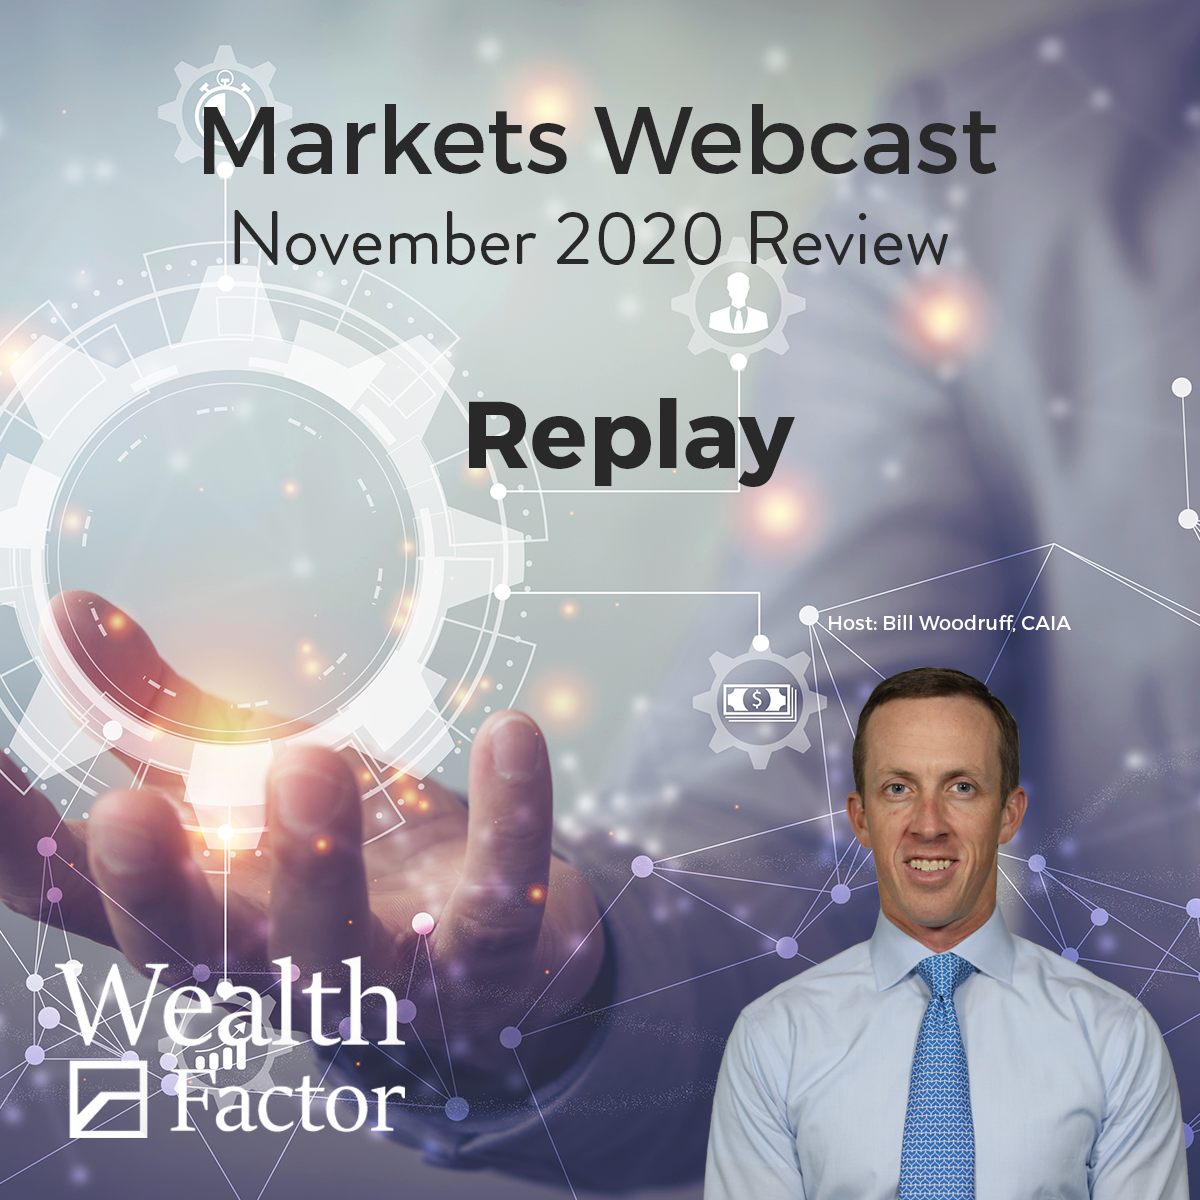 WealthFactor Review & Update: November 2020